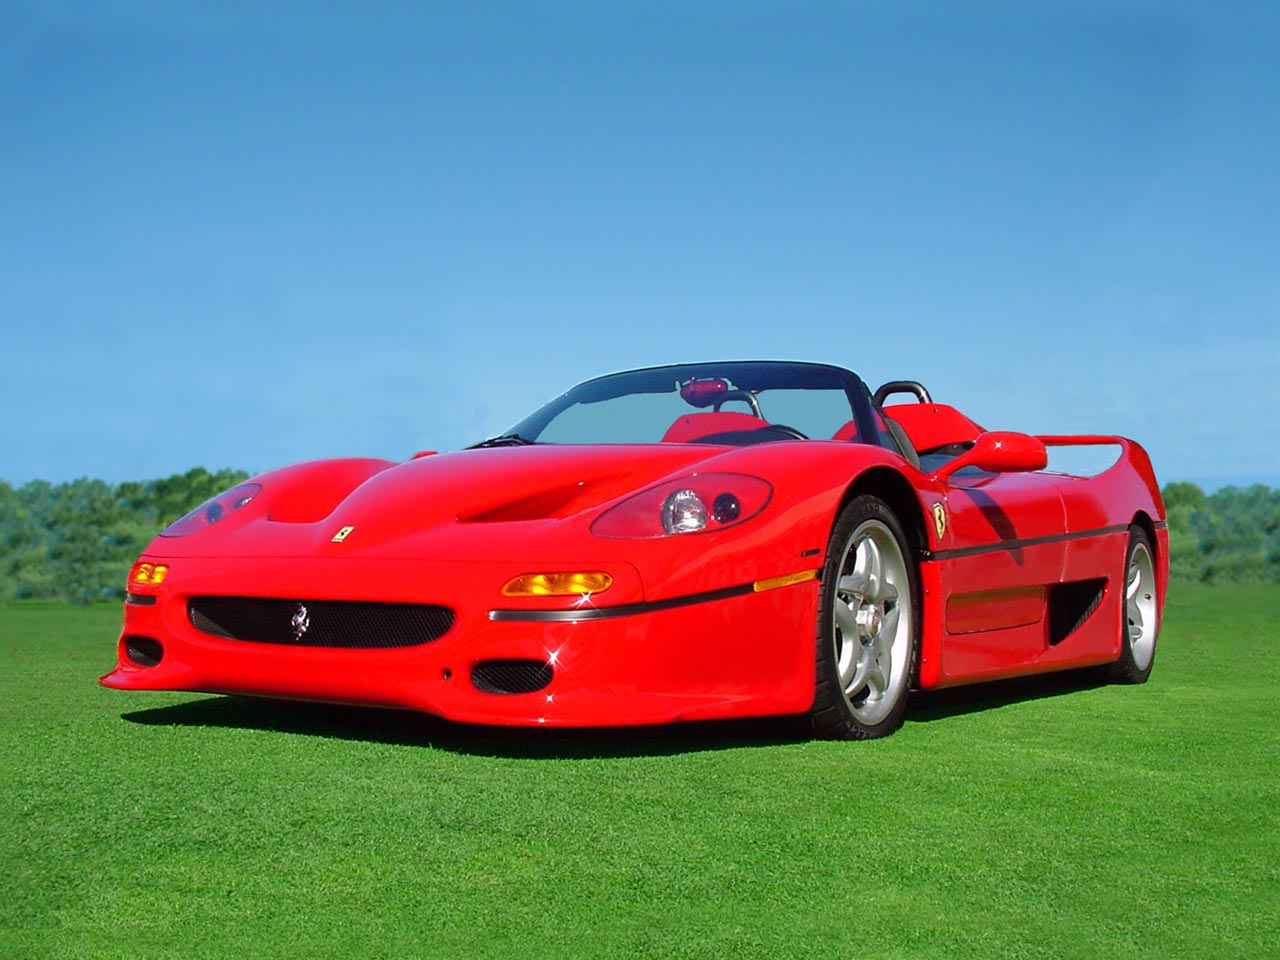 2013 ferrari enzo review price interior exterior car to ride. Black Bedroom Furniture Sets. Home Design Ideas